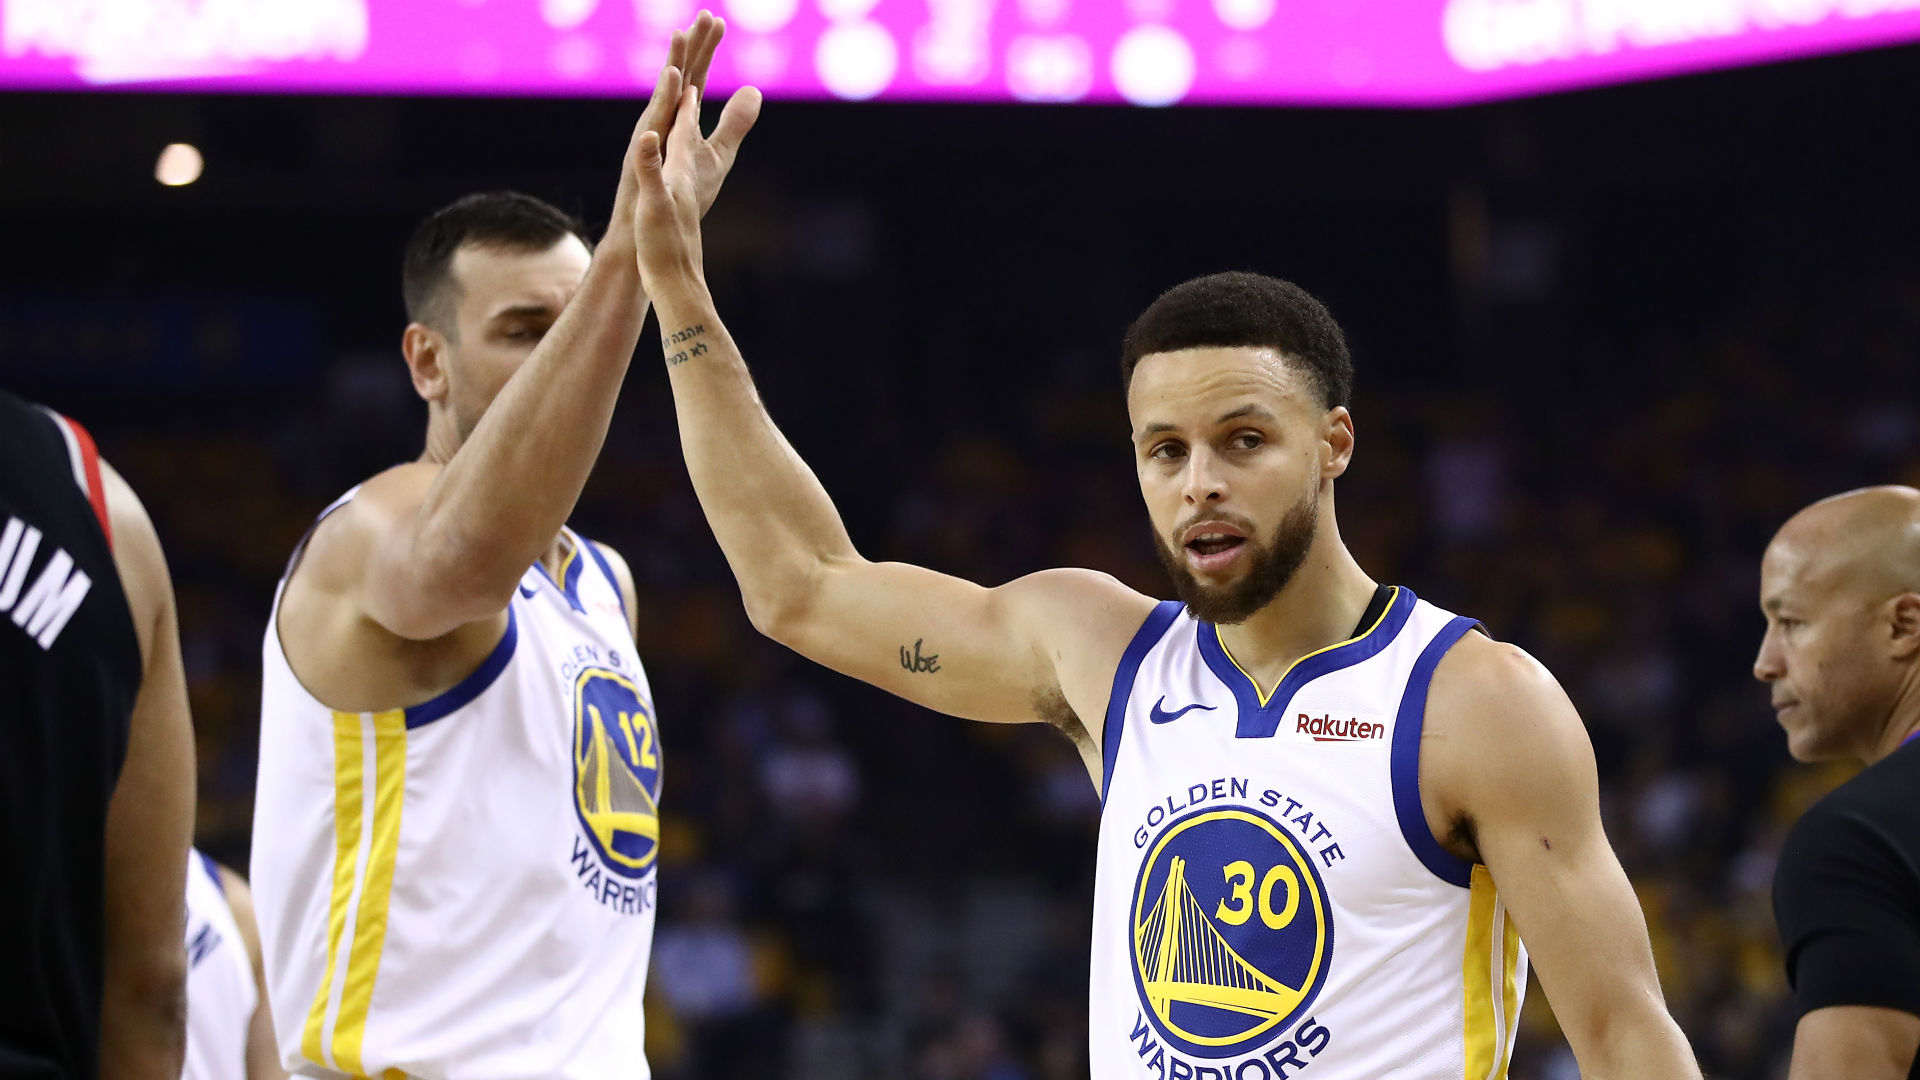 Stephen Curry starred in the Golden State Warriors' win as Portland's leading duo struggled.